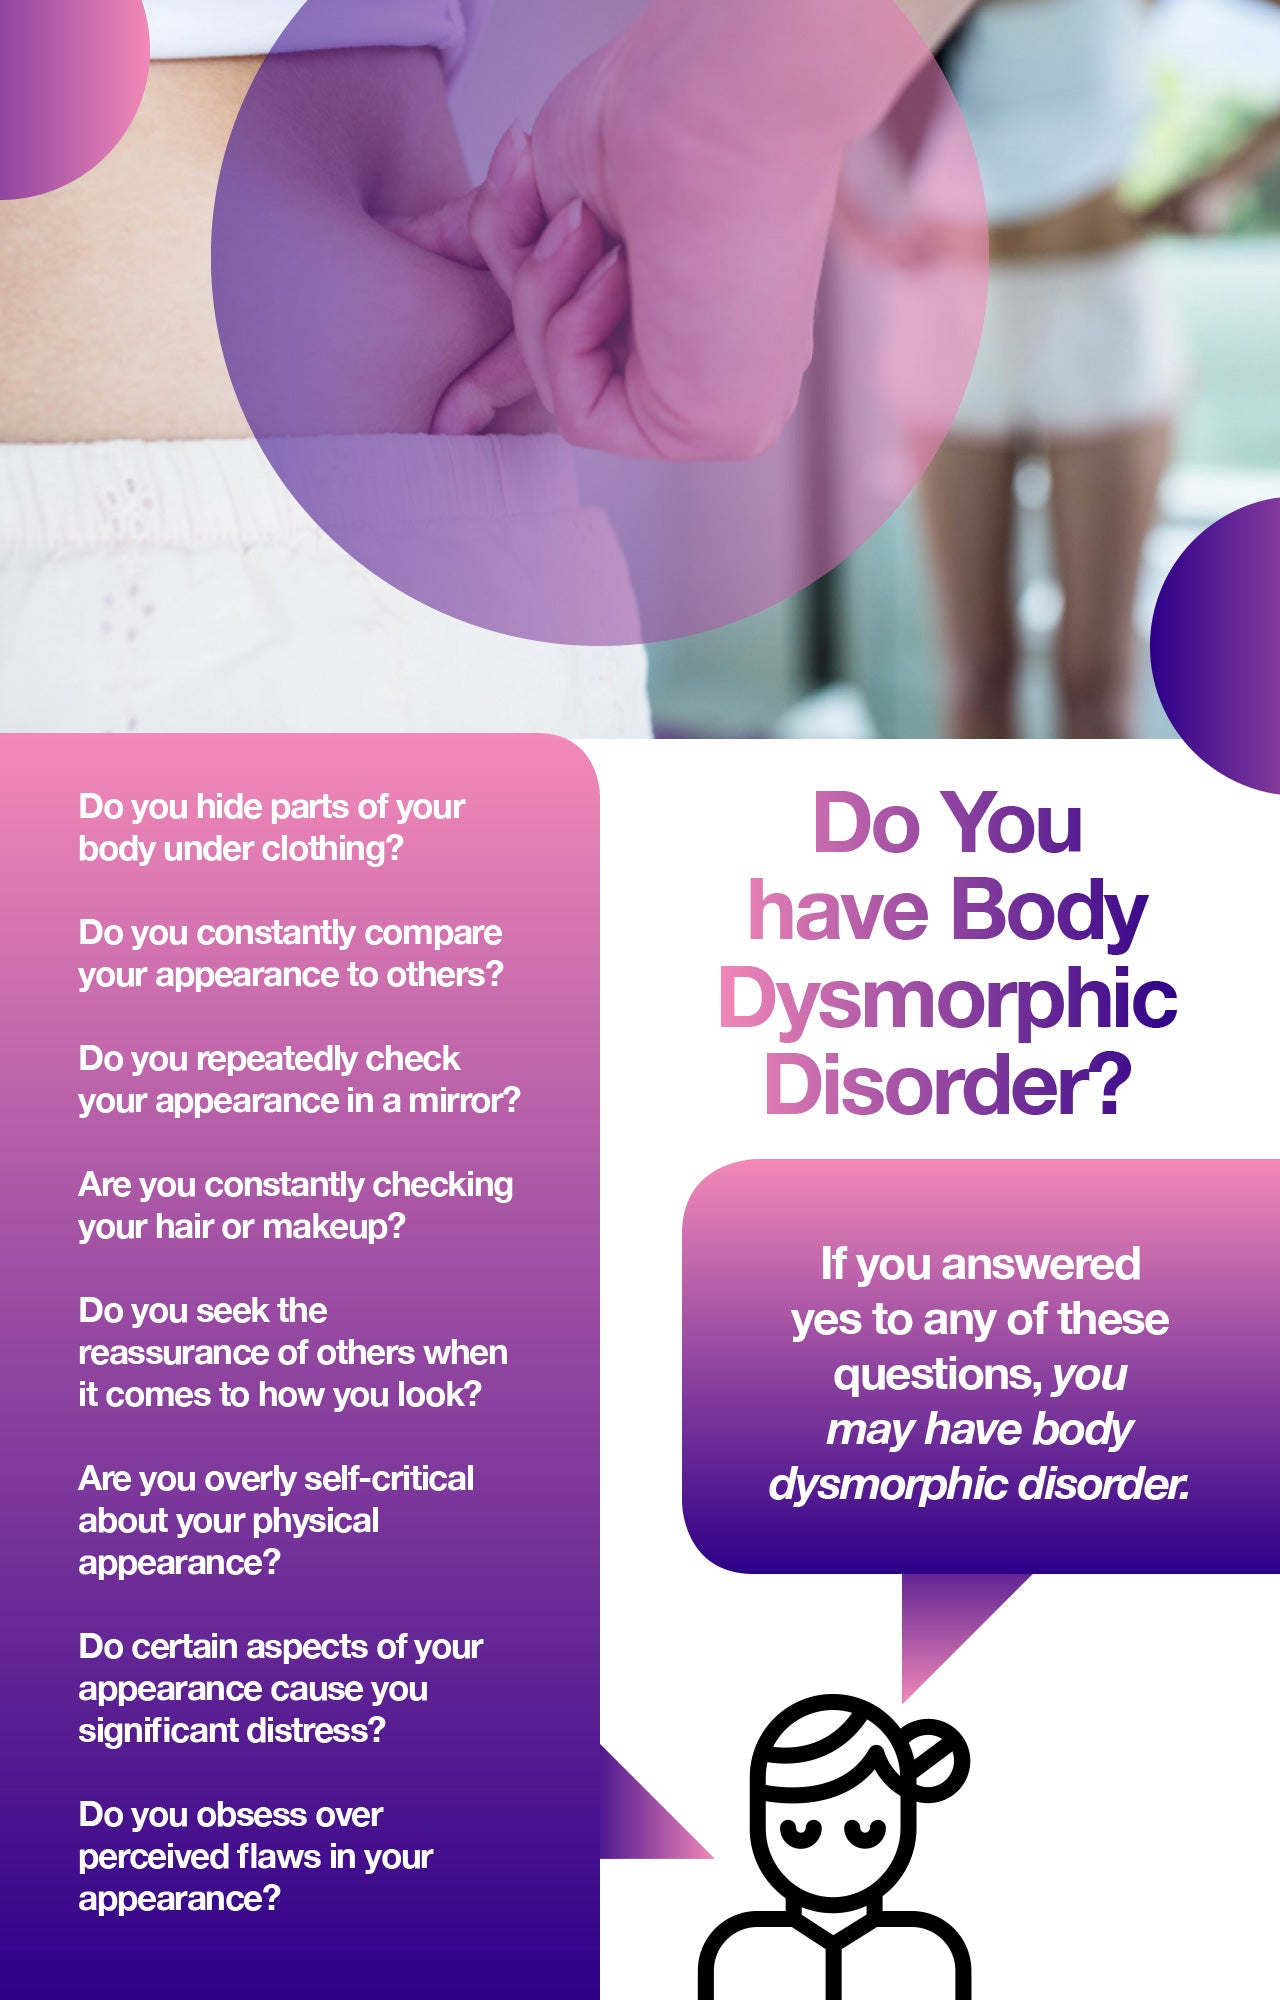 Body dysmorphic disorder, or BDD, refers to a condition in which patients experience serious distress about their appearance. Not only can living with body dysmorphia impact quality of life, making it difficult to work or enjoy time with loved ones, but patients also have an increased risk of suicide.